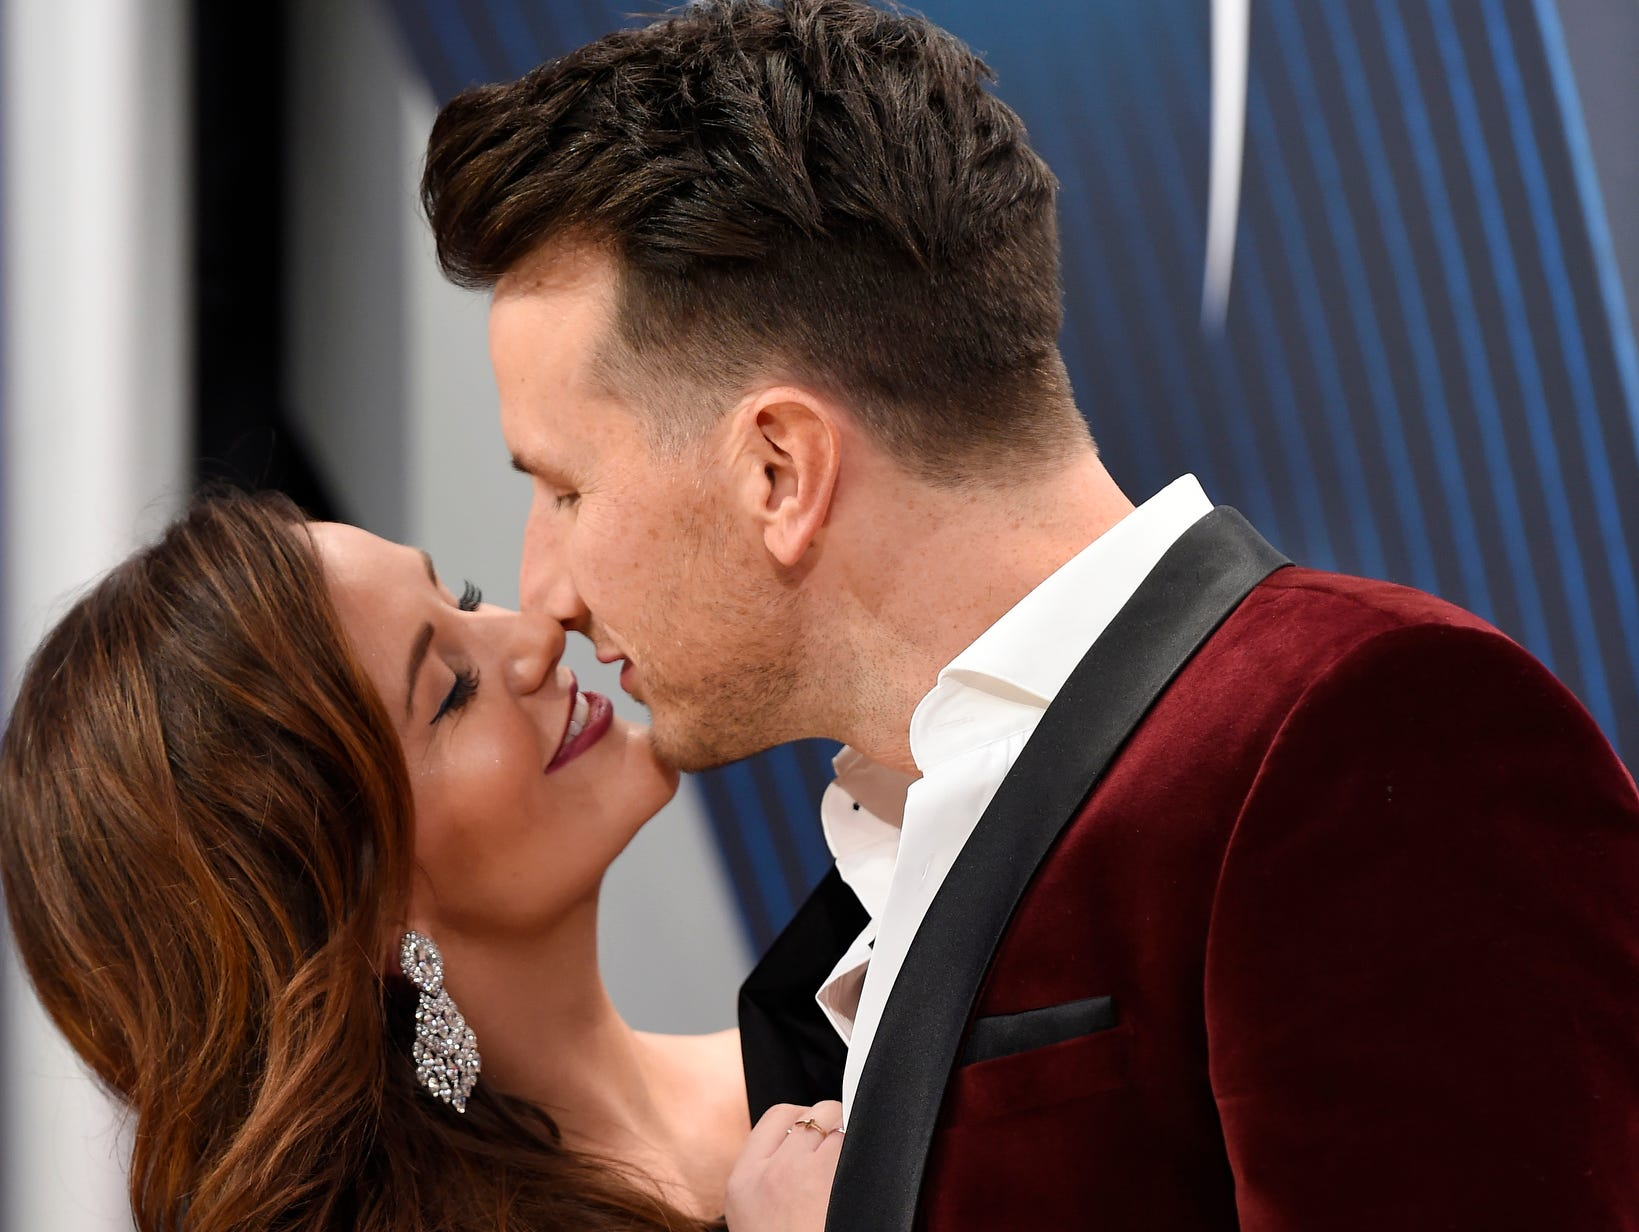 Russell Dickerson and wife Kailey snuggle on the red carpet.